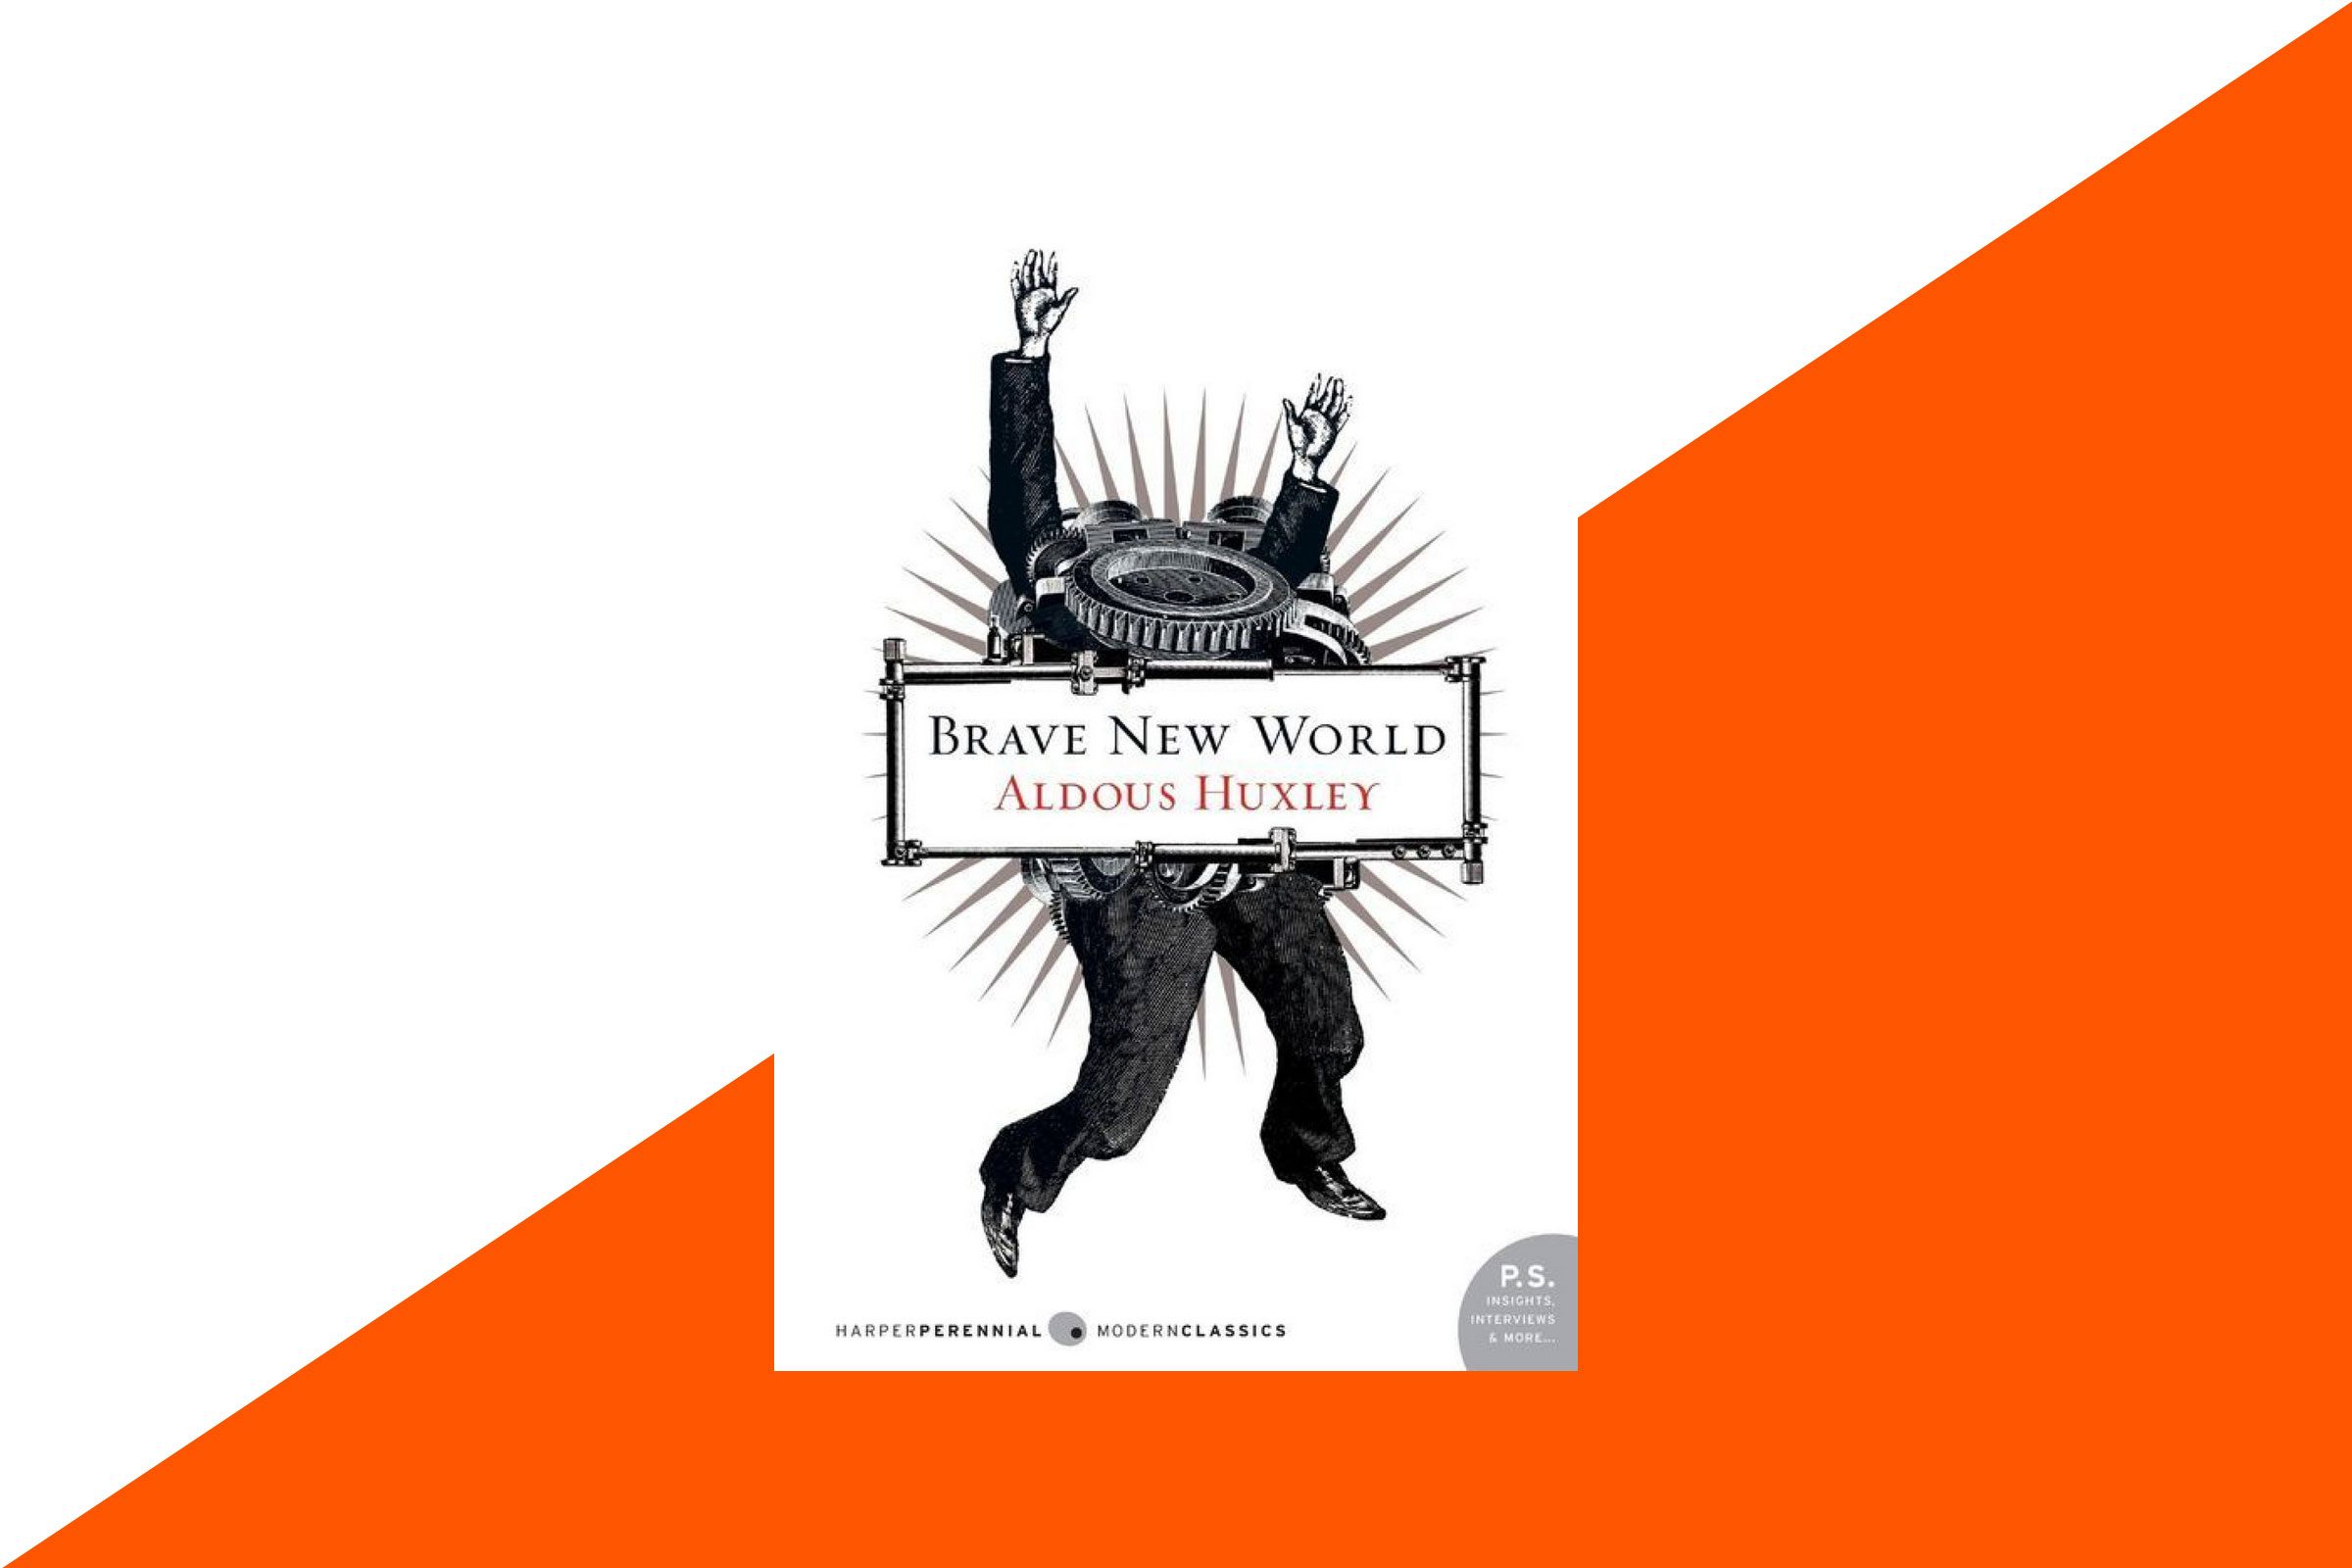 animal farm vs brave new world - 1984 vs brave new world 1984 and brave new world, written by george orwell and aldous huxley, respectively, are both books that reflect the authors vision of how society would end up at the course it was going at the time of the writing of the book.